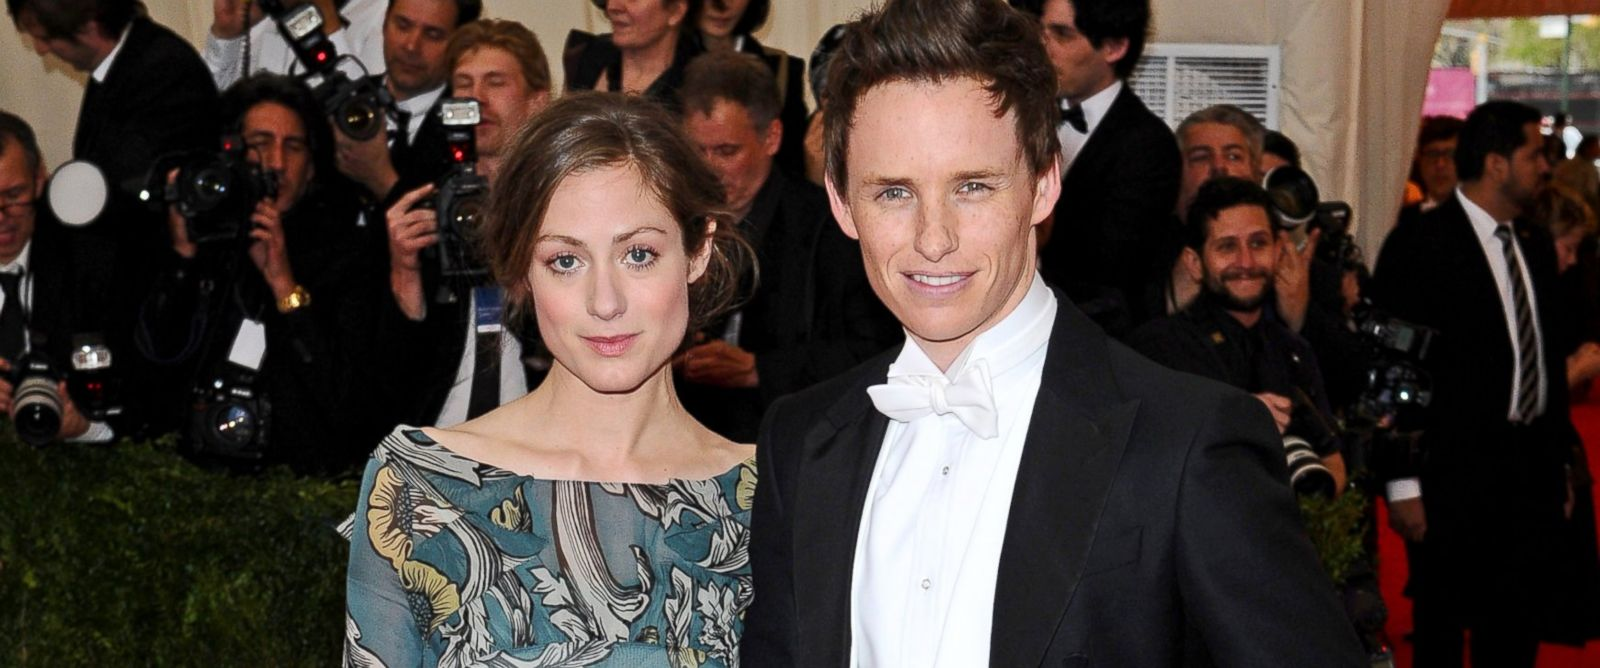 PHOTO: Hannah Bagshawe and Eddie Redmayne attend the Charles James: Beyond Fashion Costume Institute Gala at the Metropolitan Museum of Art, May 5, 2014, in New York City.